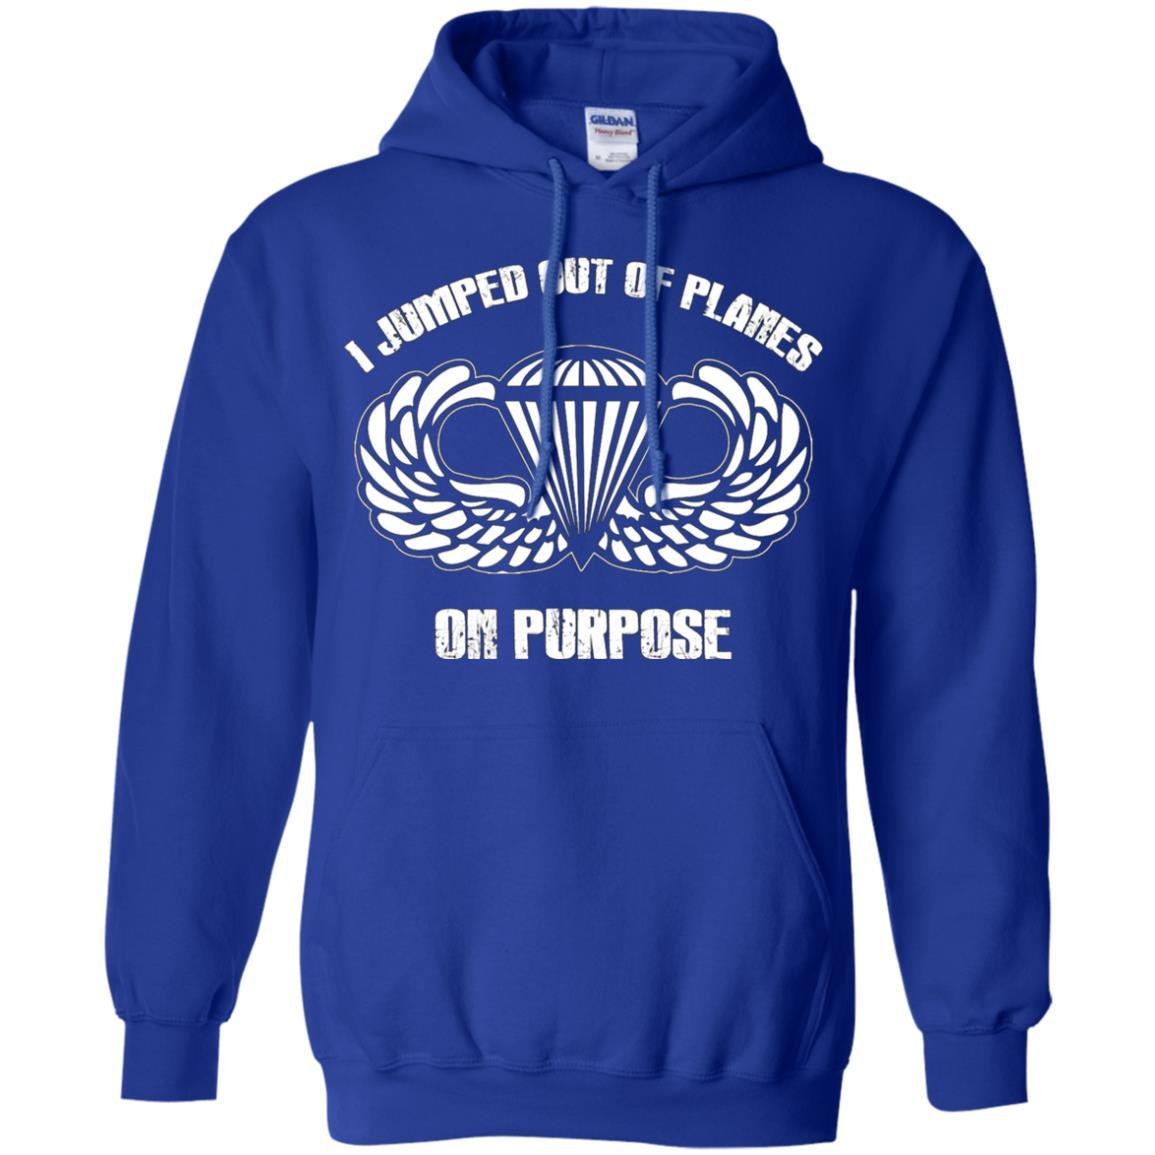 I jumped out of planes on purpose, Airborne - Pullover Hoodie Royal / 5XL